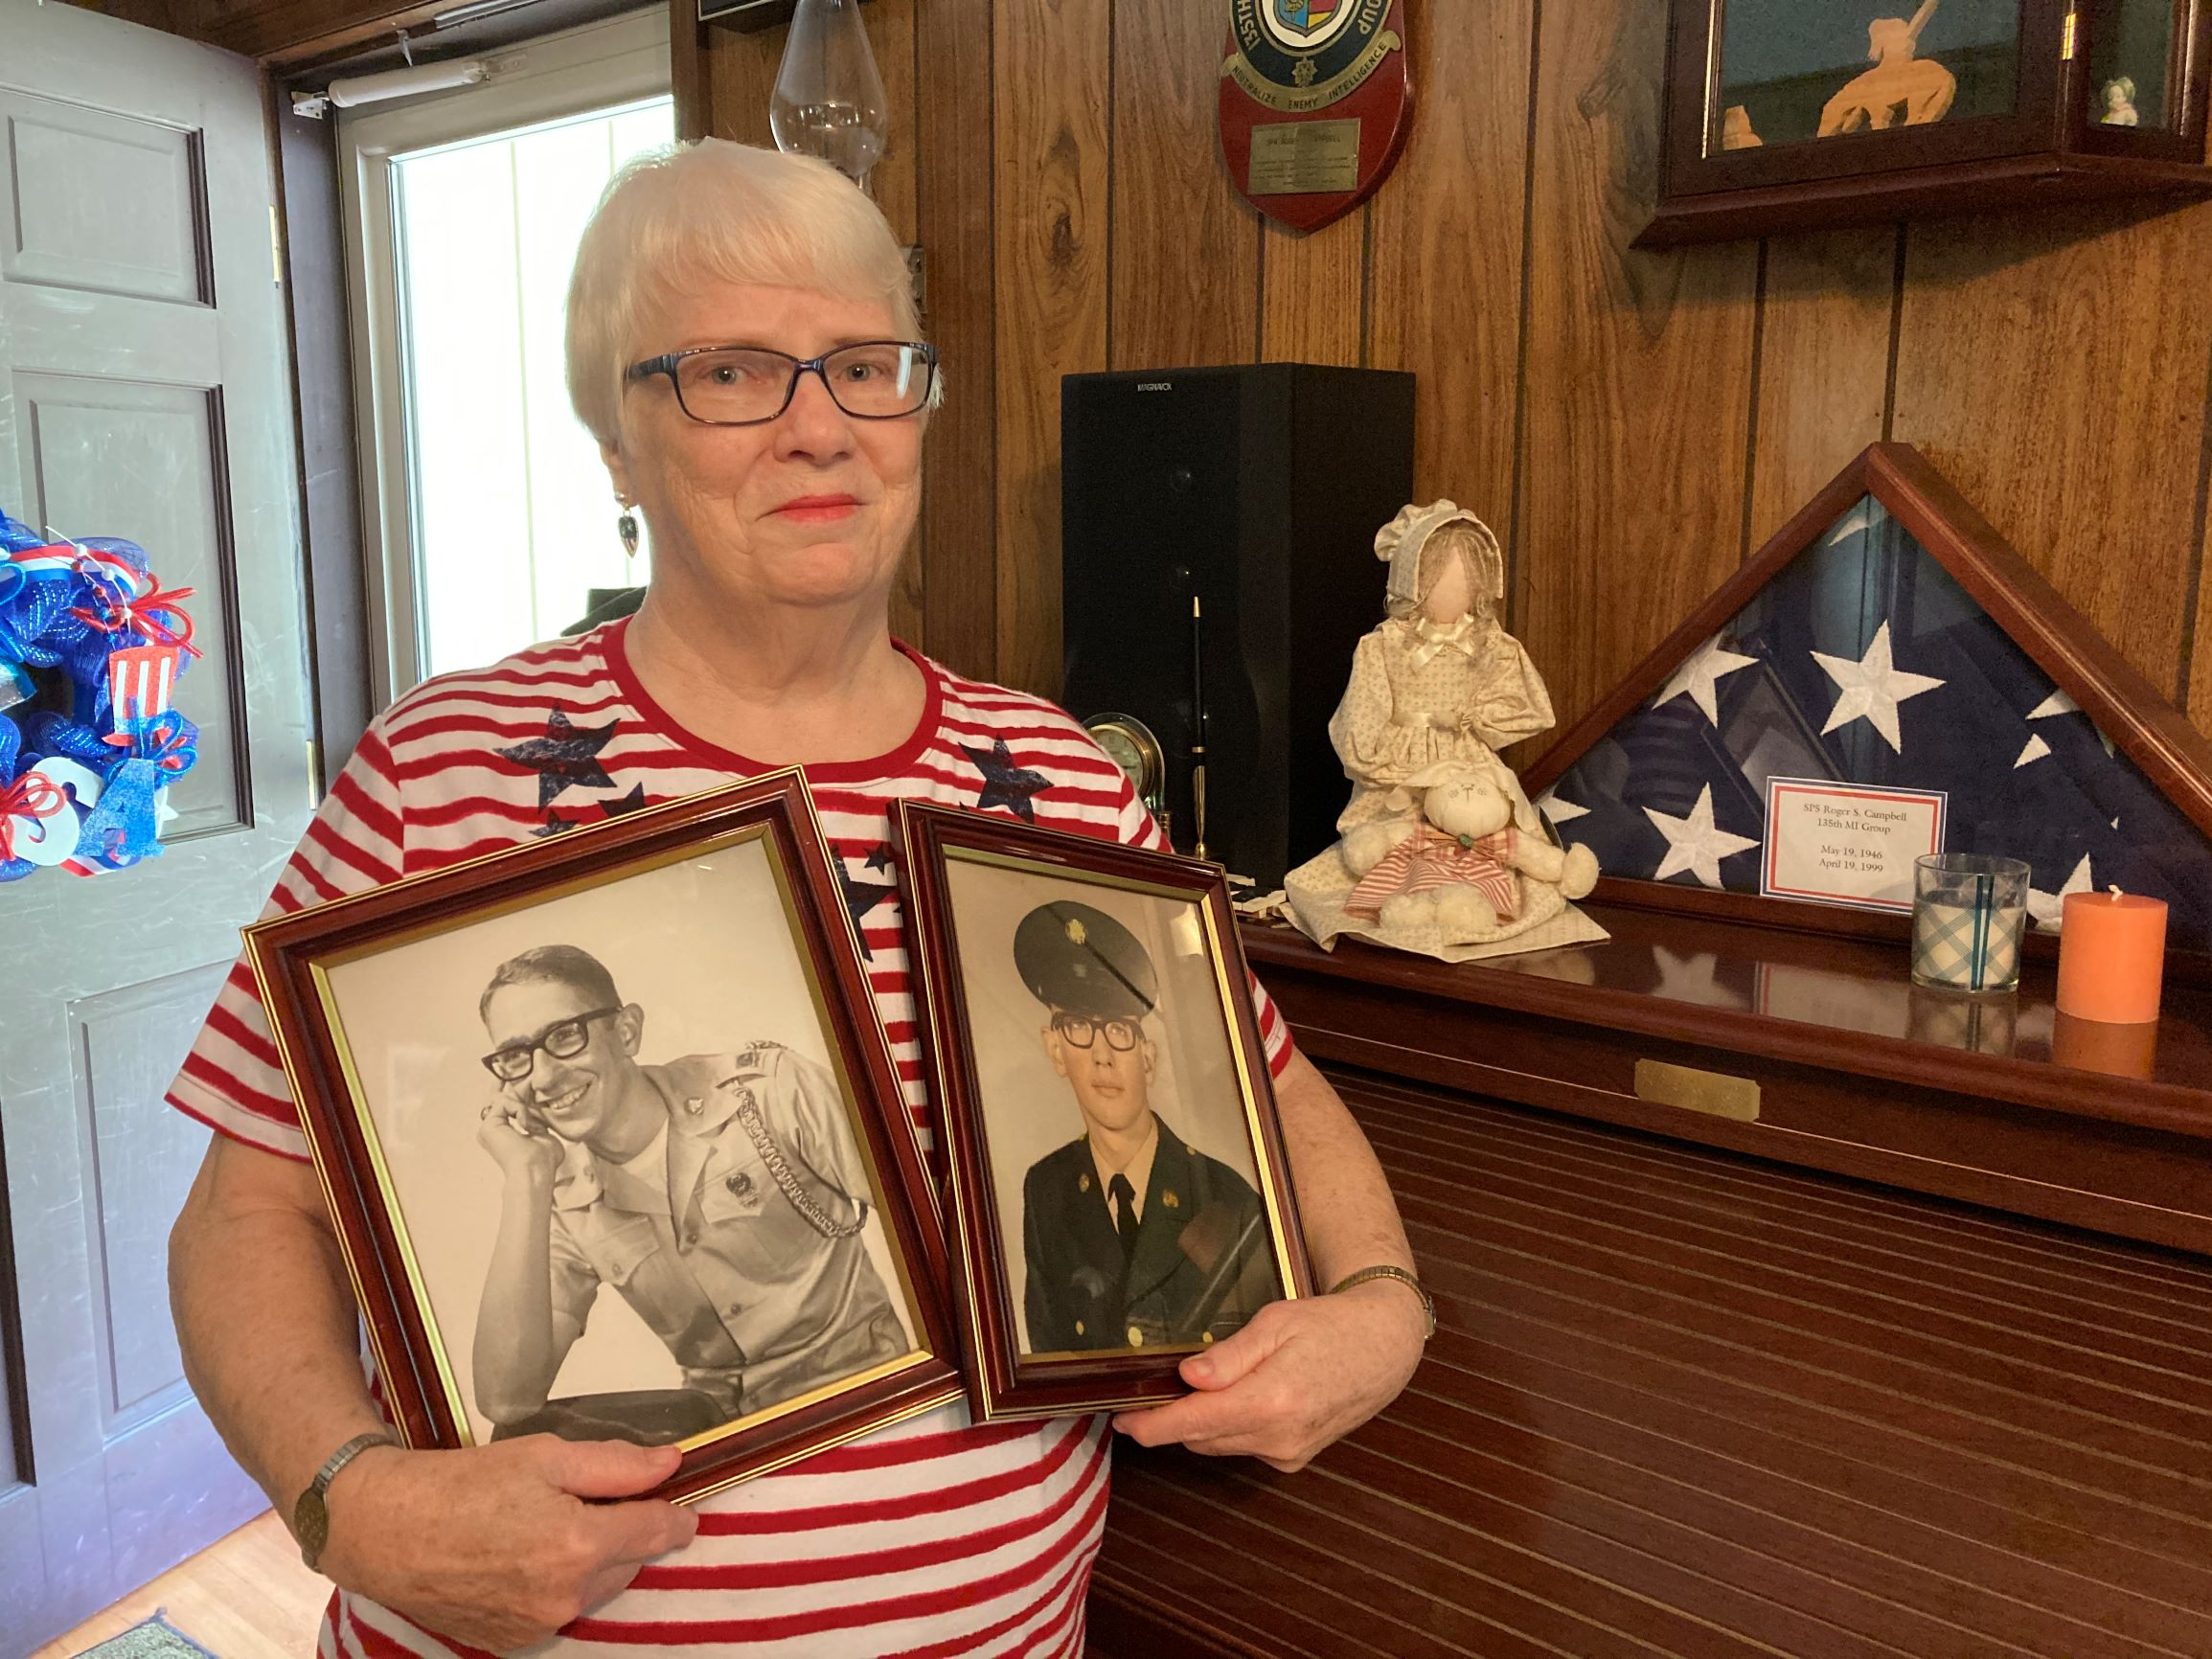 woman holding two framed photos